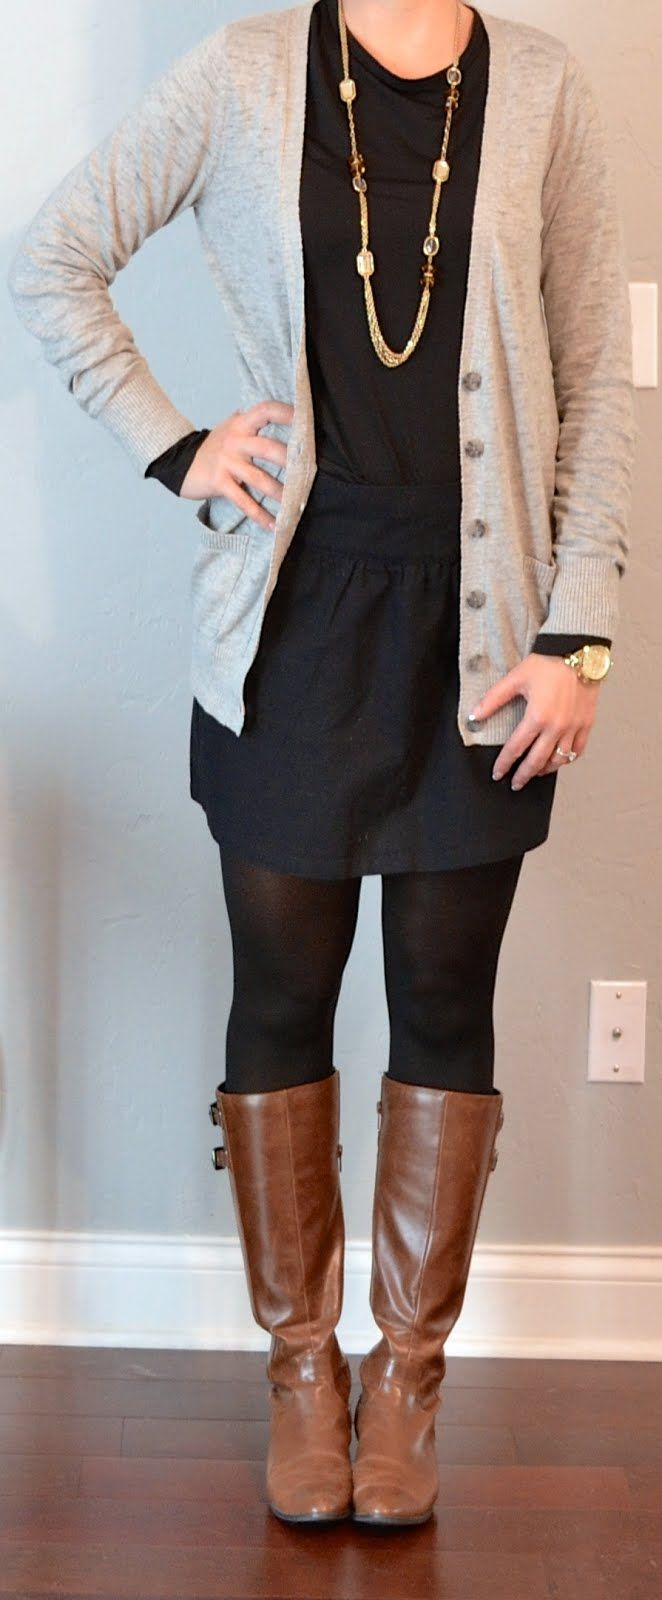 Long cardigan with dress and leggings and boots.....simple and comfy